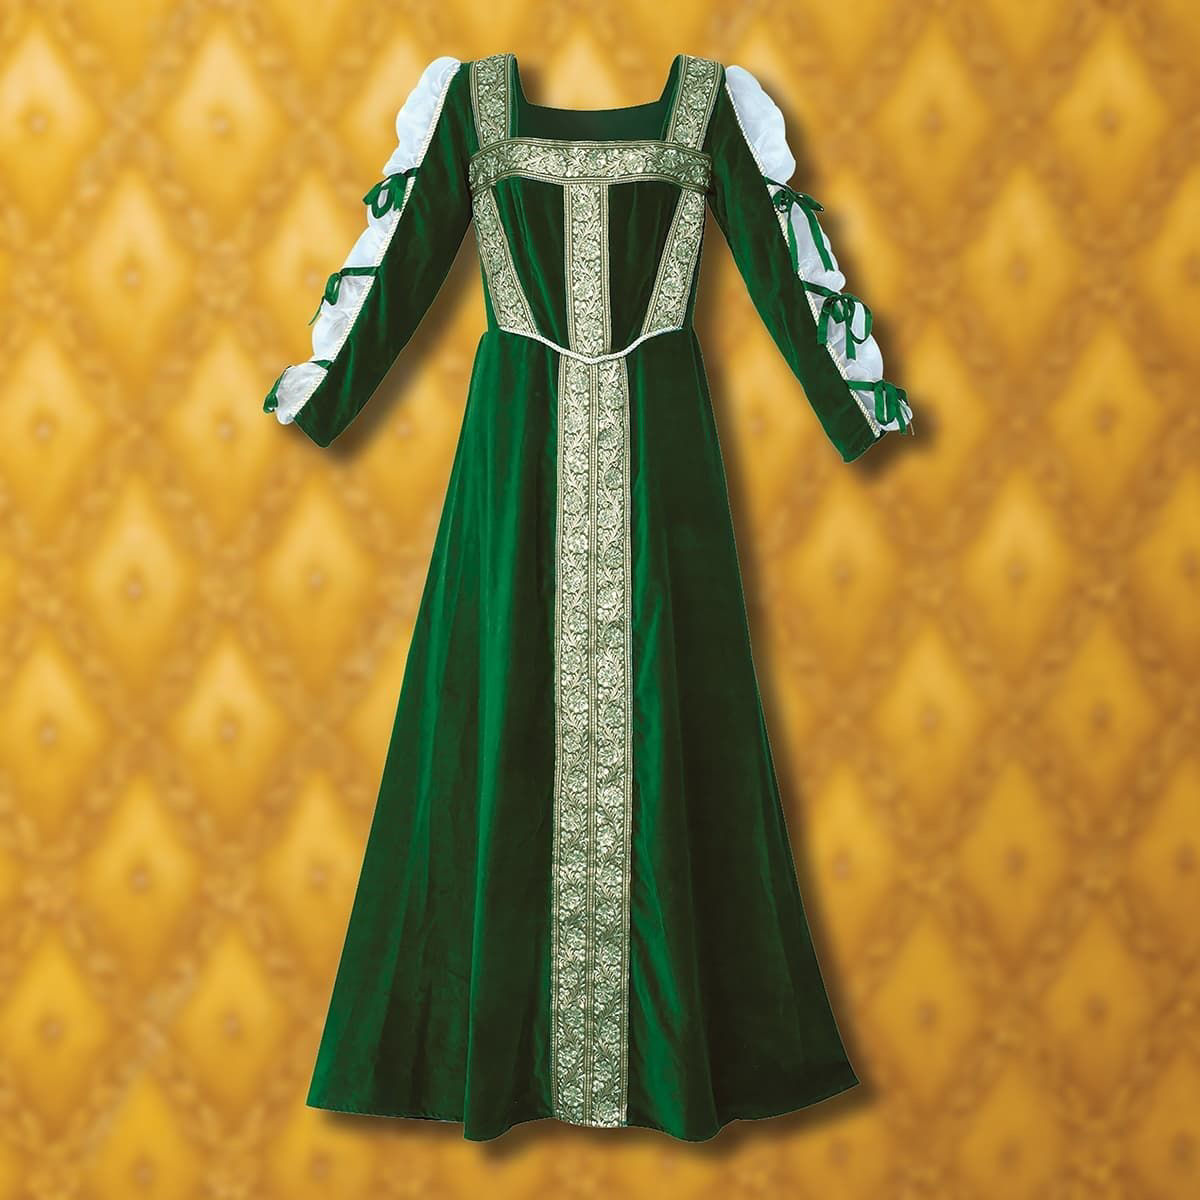 This green, 100% cotton velvet dress is accented with gold sequined trim. The sleeves have sheer soft netting finished with matching green bows